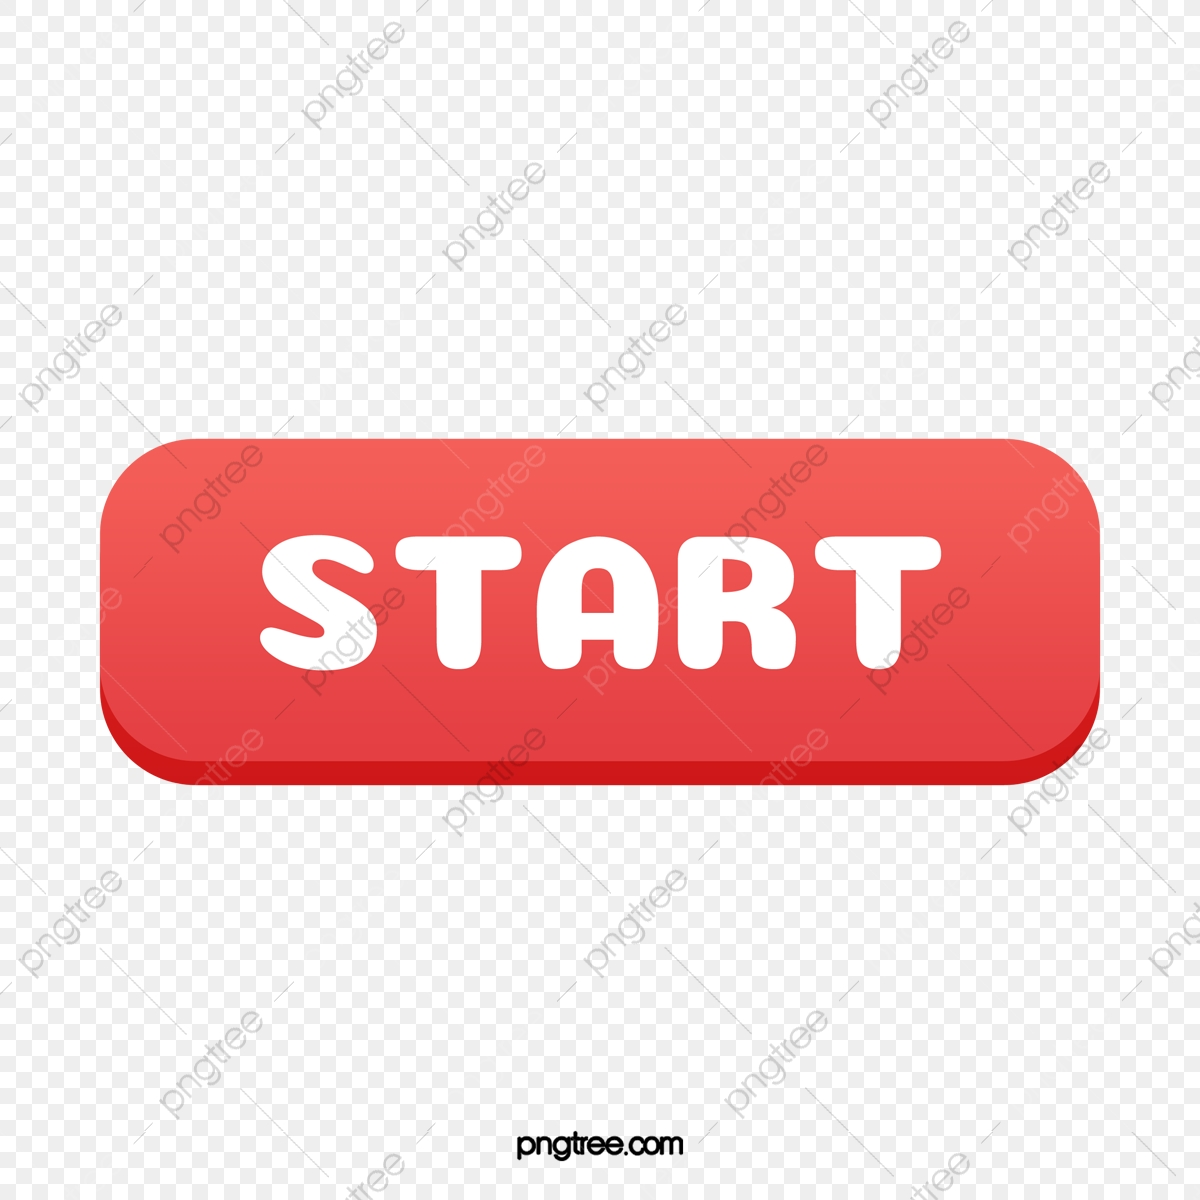 The Start Button, Button Clipart, Red, Start PNG Transparent Clipart Image  and PSD File for Free Download